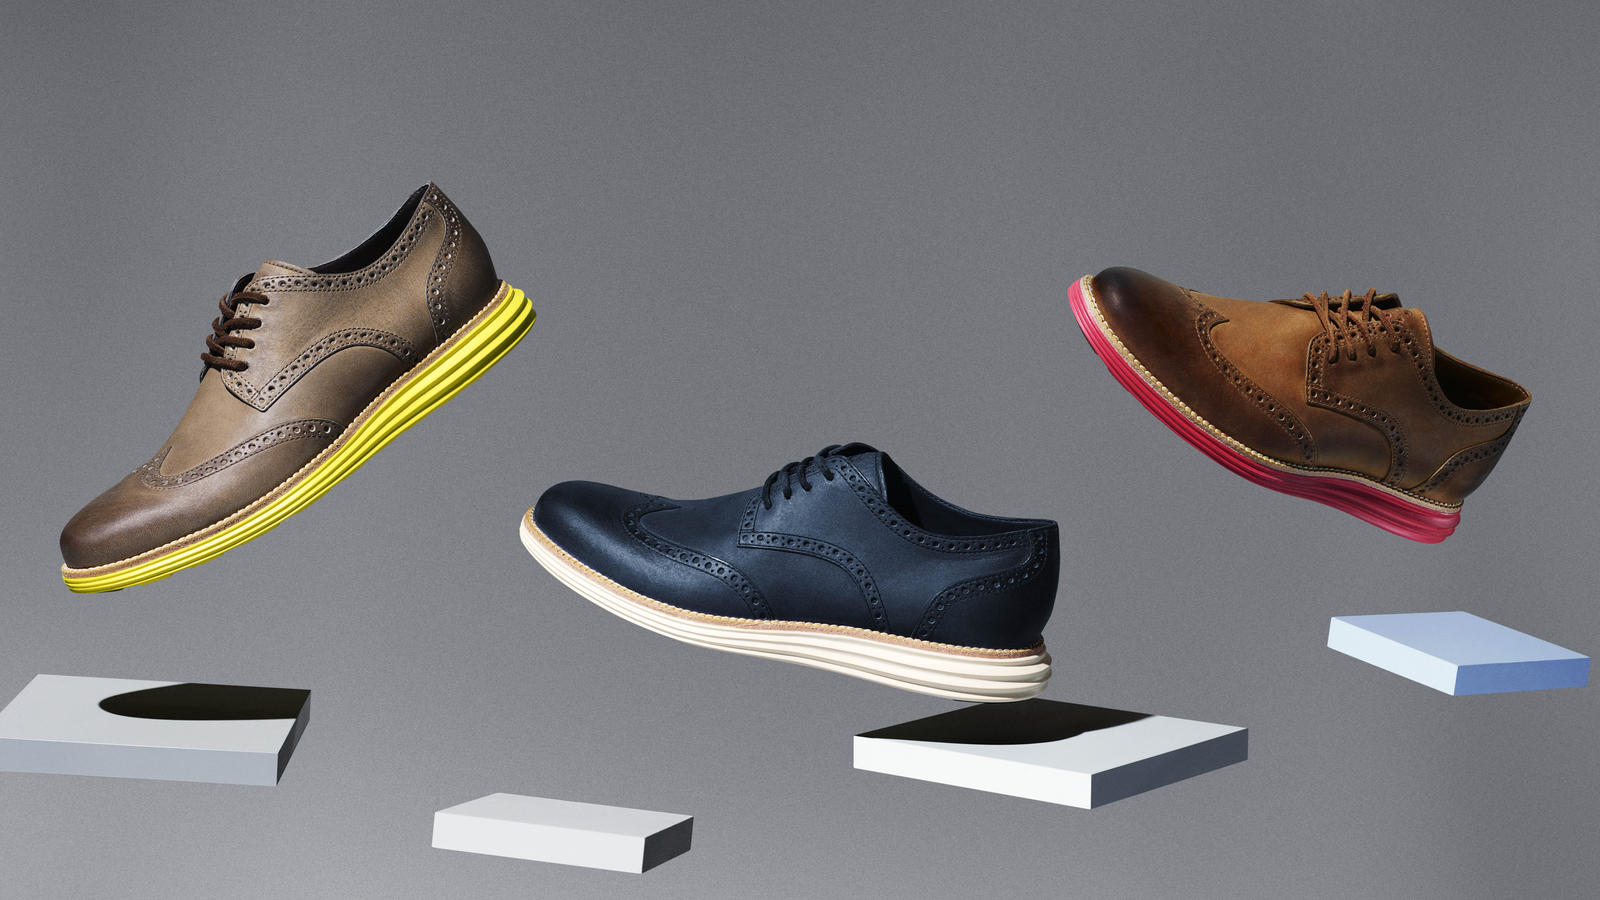 cole haan shoes 2018 images hd background 708715